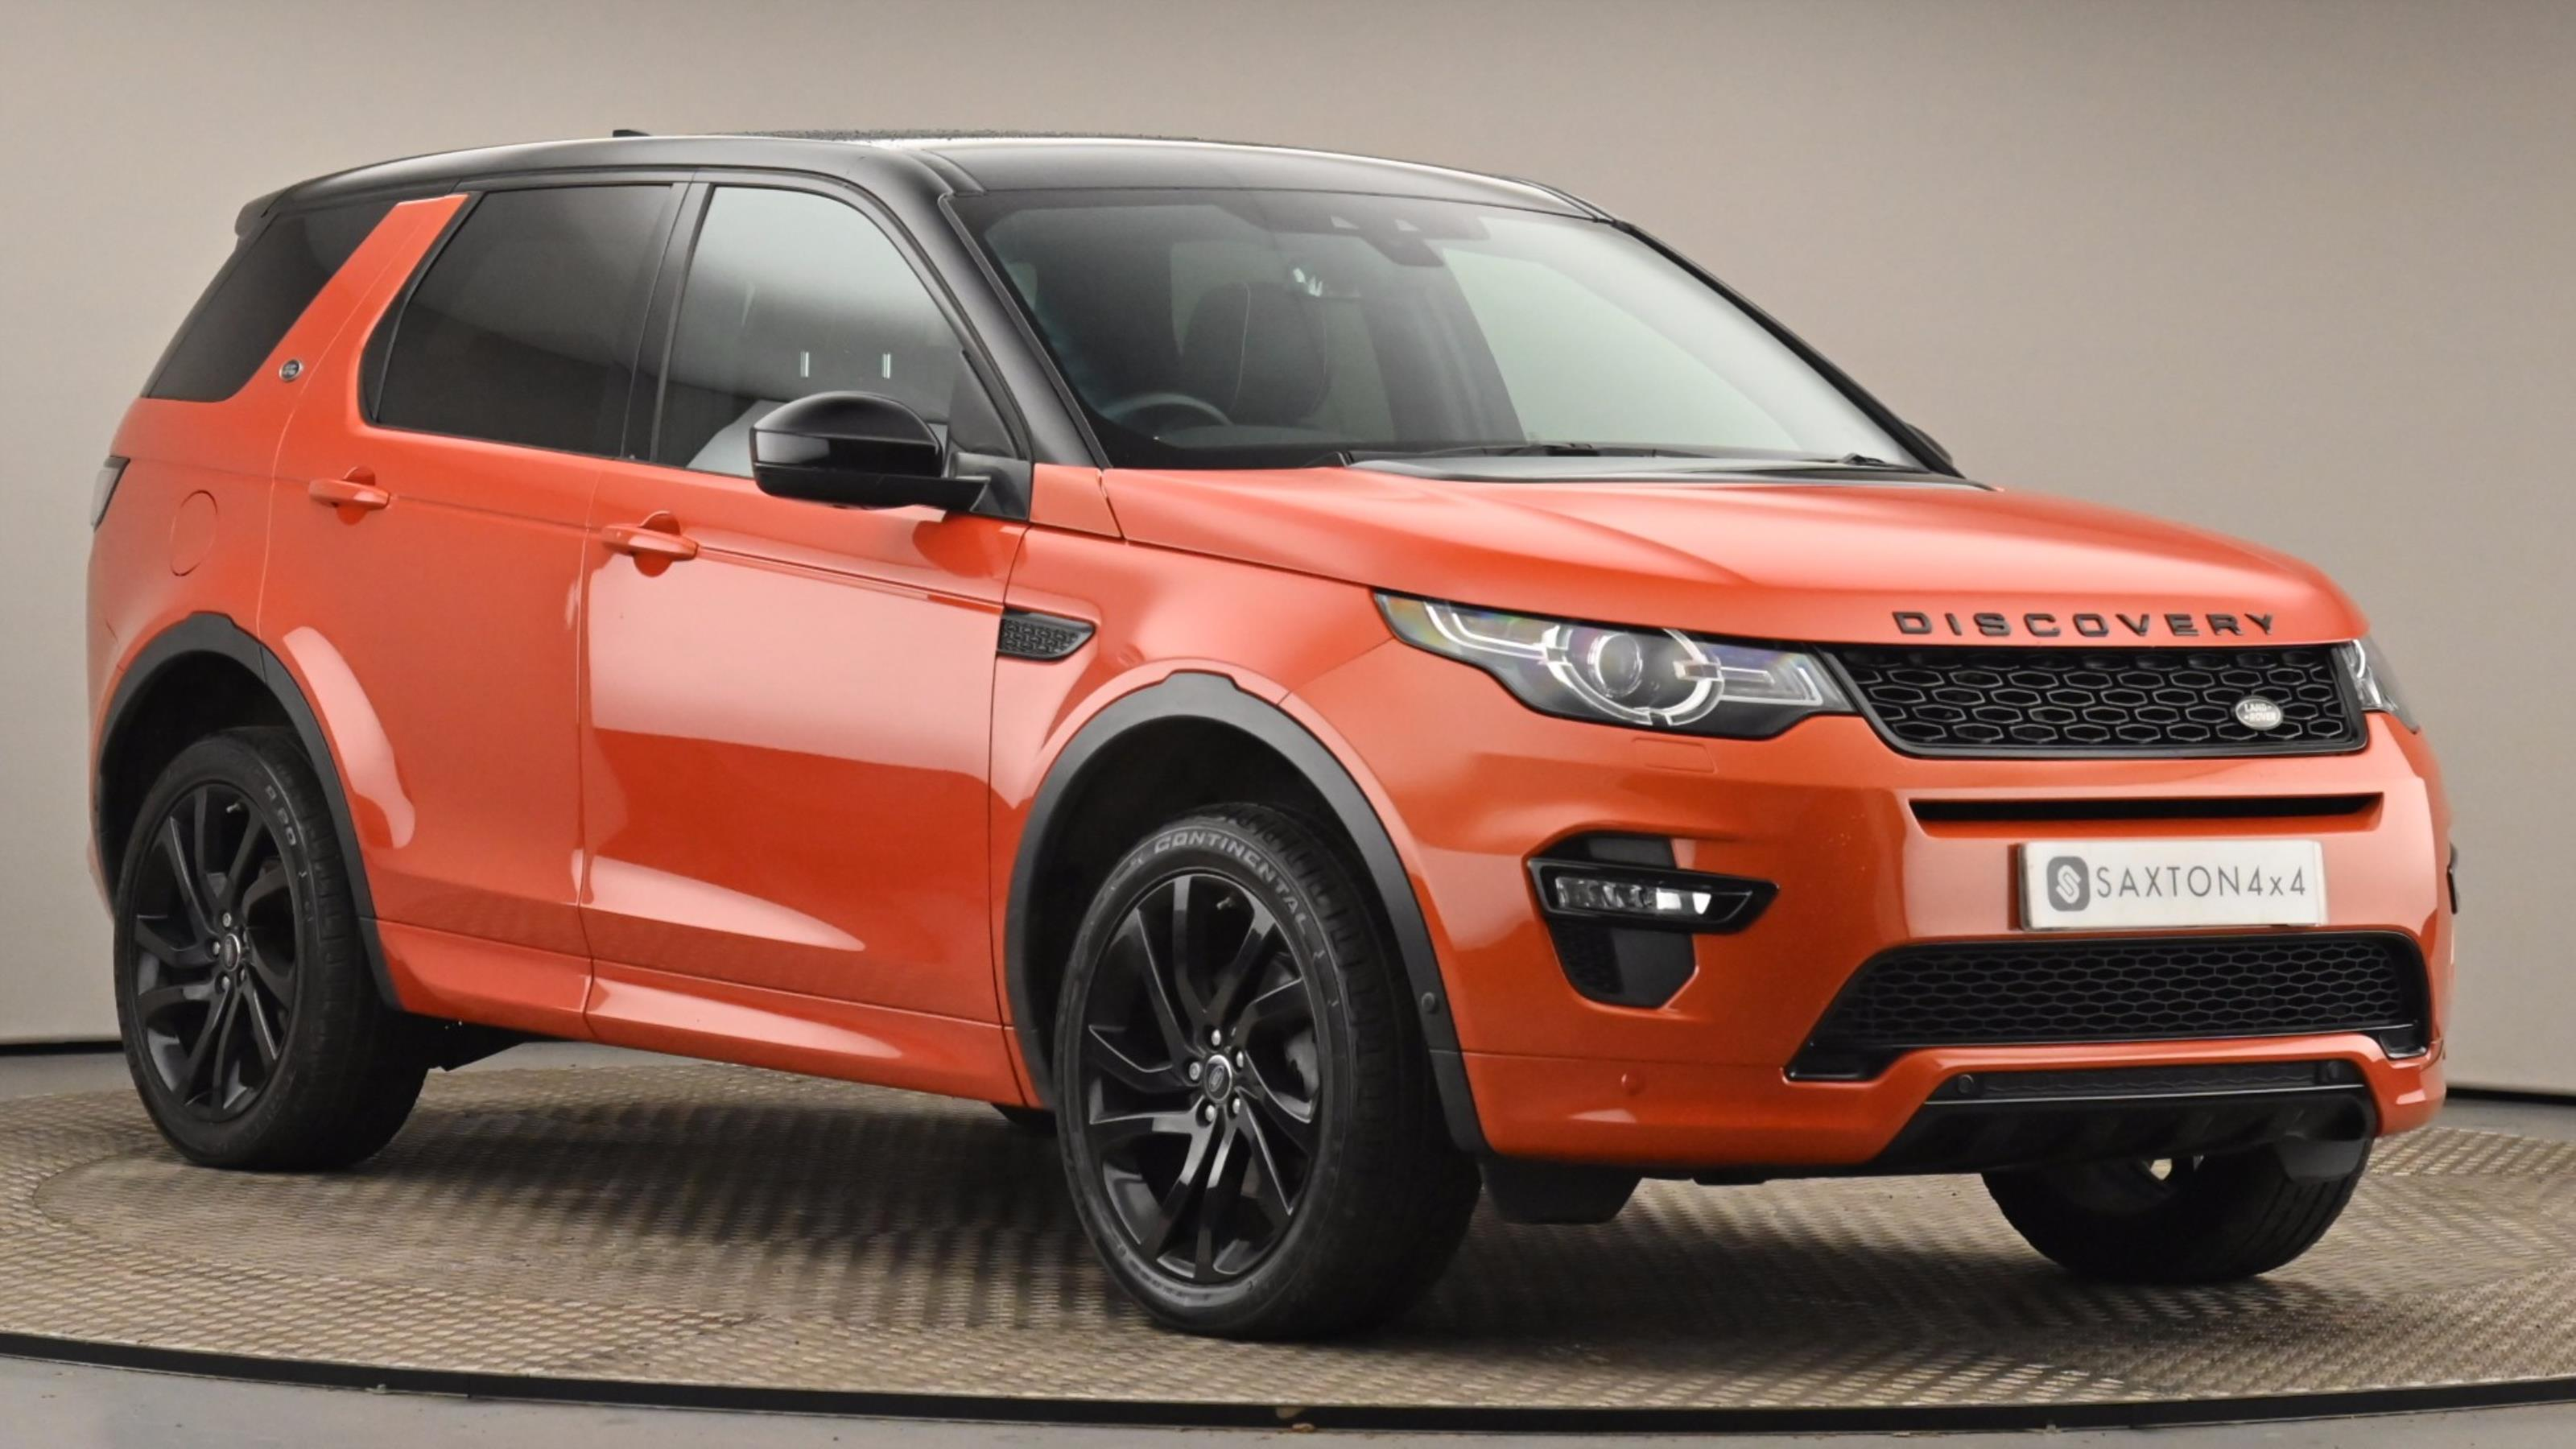 Used 2016 Land Rover DISCOVERY SPORT 2.0 TD4 180 HSE Dynamic Lux 5dr Auto ORANGE at Saxton4x4